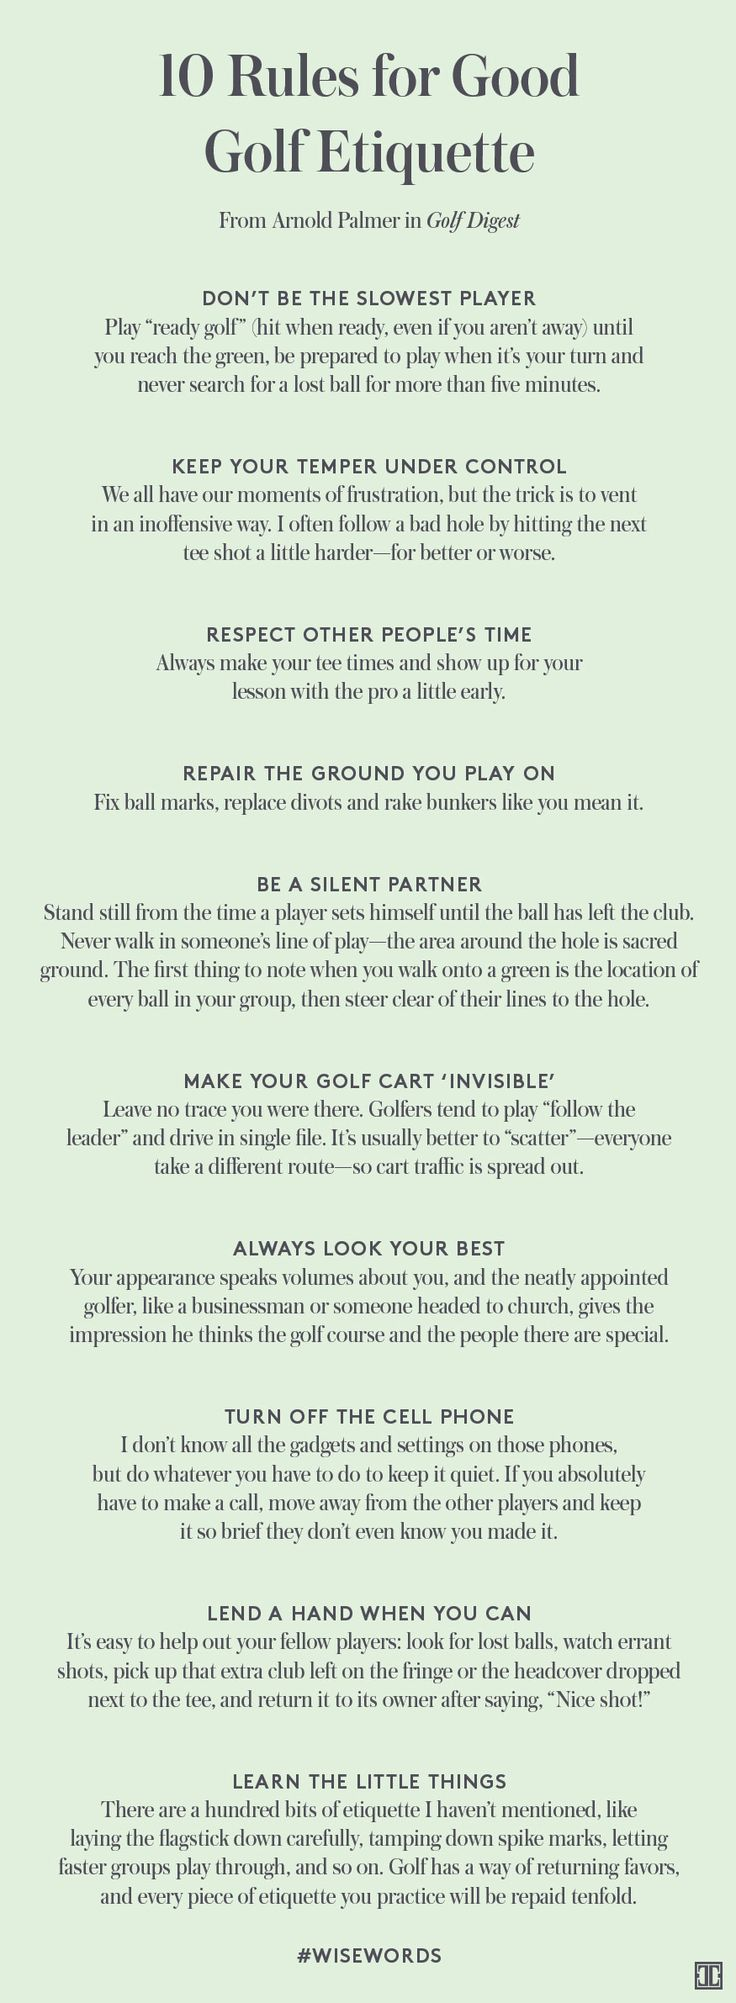 10 Rules for Good Golf Etiquette